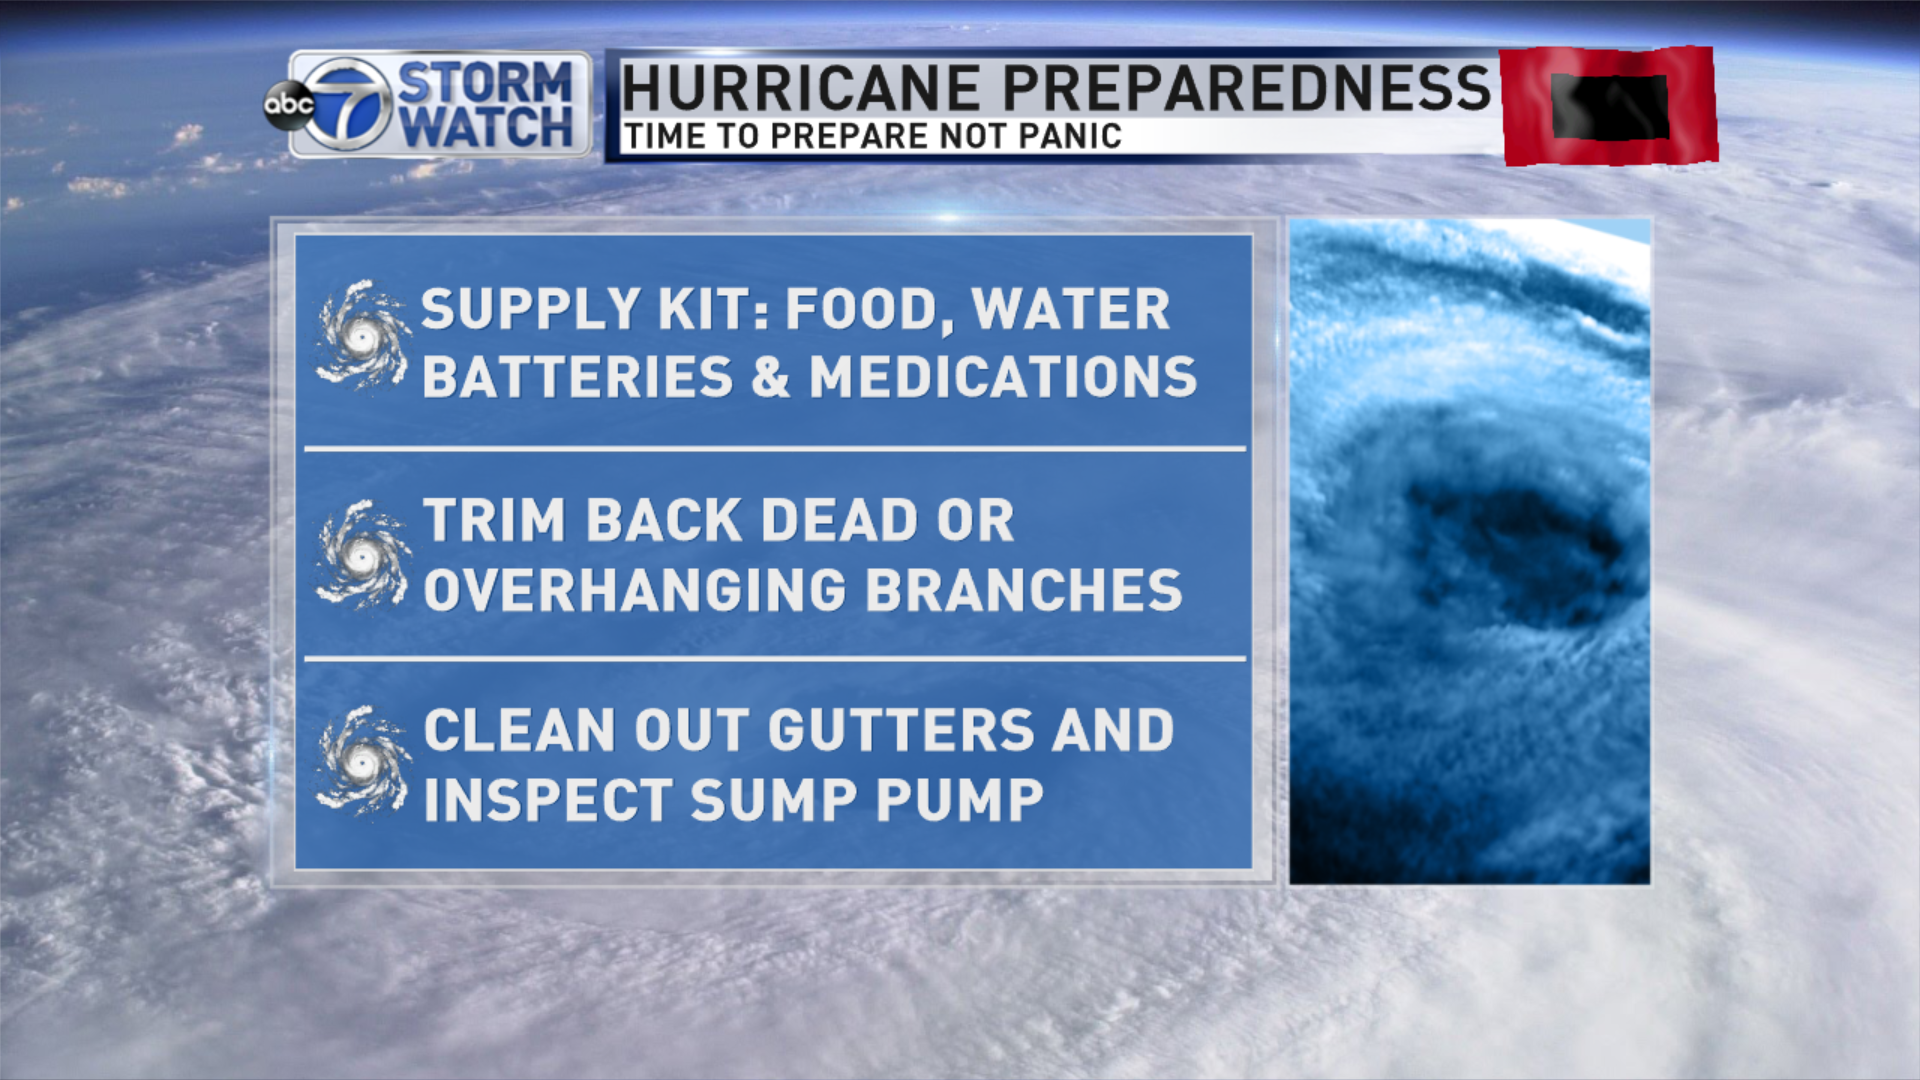 Whenever there is talk of a natural disaster in the DMV area, there is a tendency to panic. With hurricane Florence continuing to strengthen and the forecast of it becoming a major Category 4 before it makes a landfall, now is definitely the time to talk emergency preparedness. (Image: Courtesy StormWatch7 team)